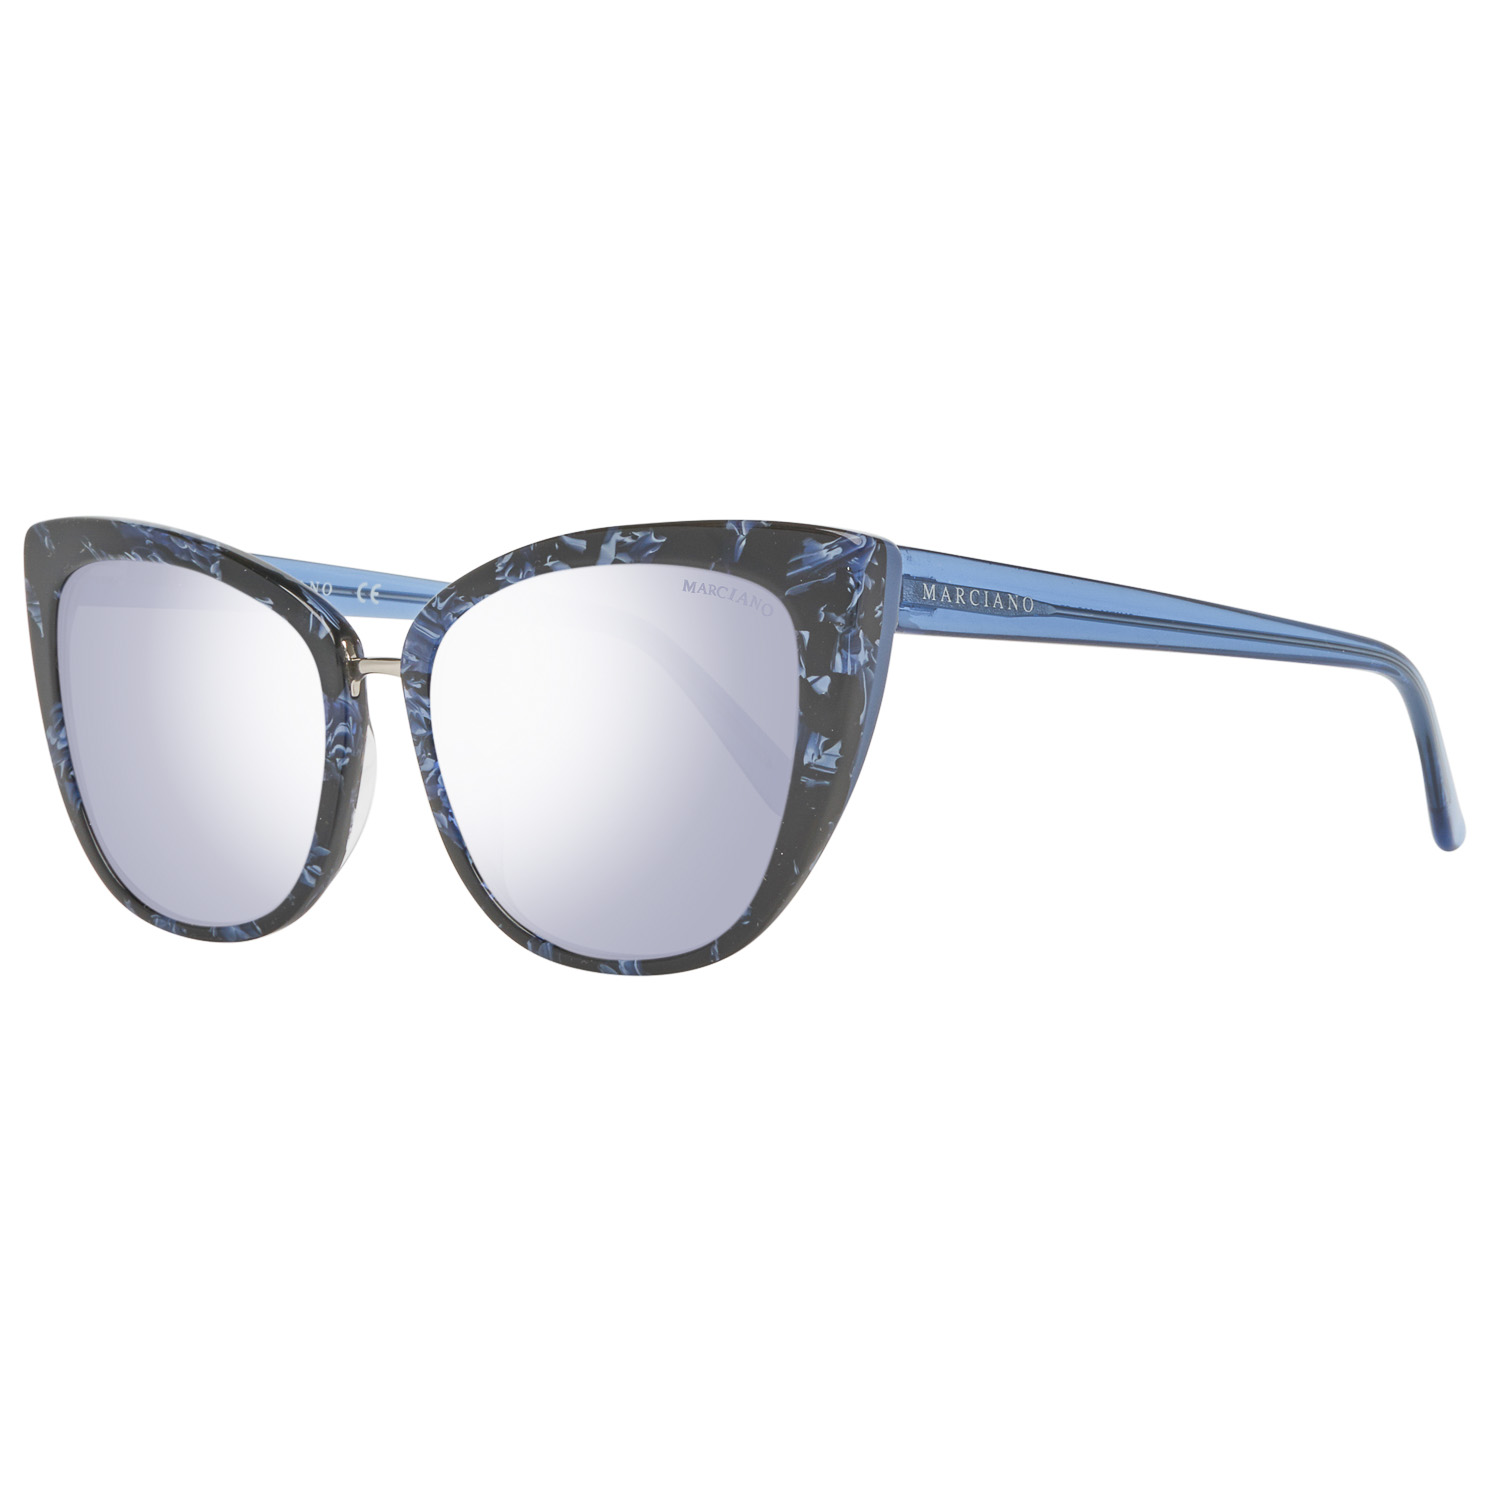 Guess by Marciano Sunglasses GM0783 89C 55 Blue